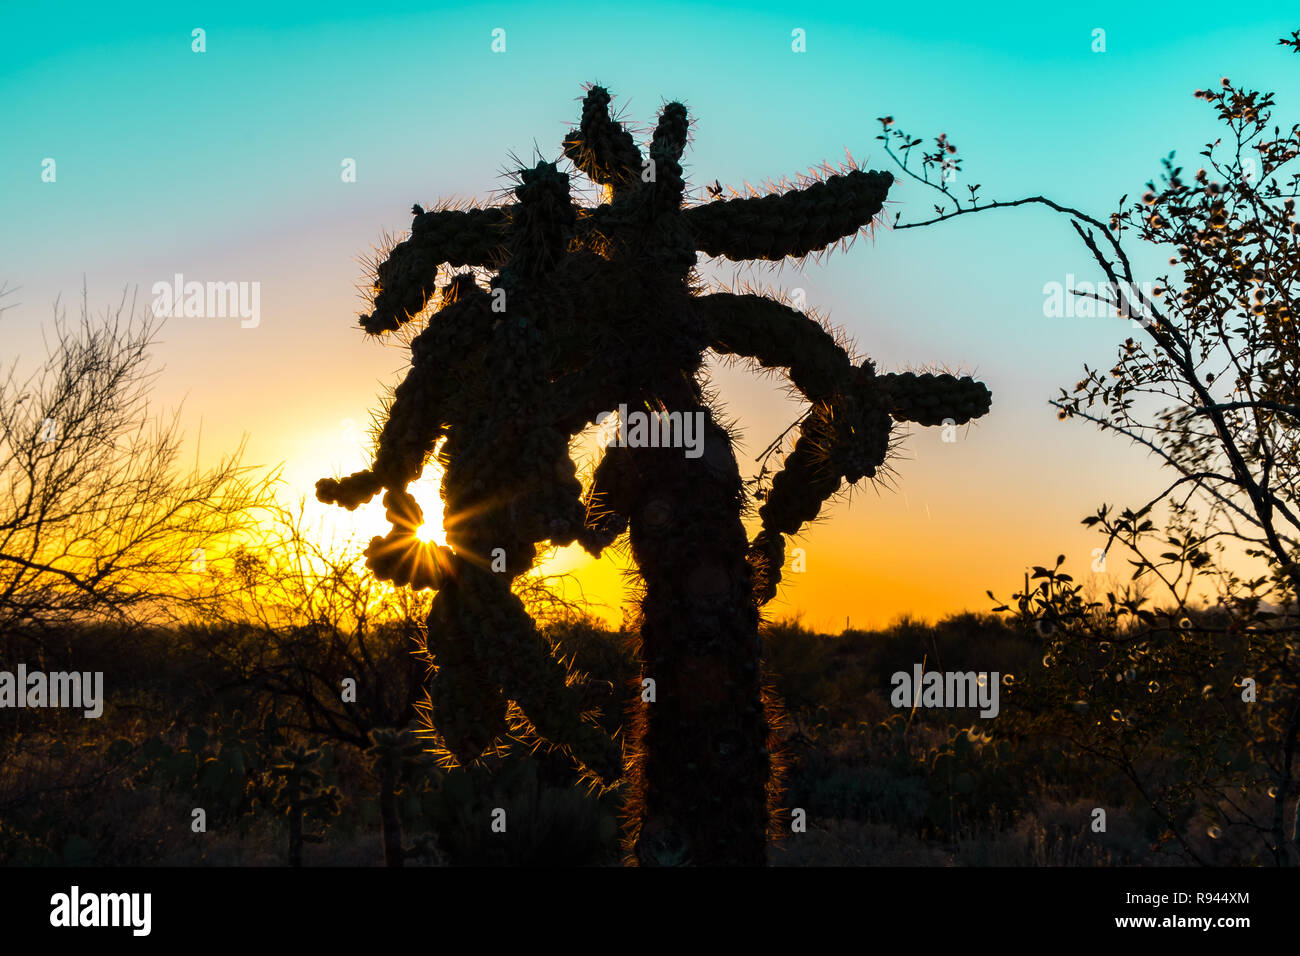 Silhouette of a Cholla Cactus at sunrise or sunset in the Sonoran Desert in Saguaro National Park in Tuscon, Arizona, USA - Stock Image